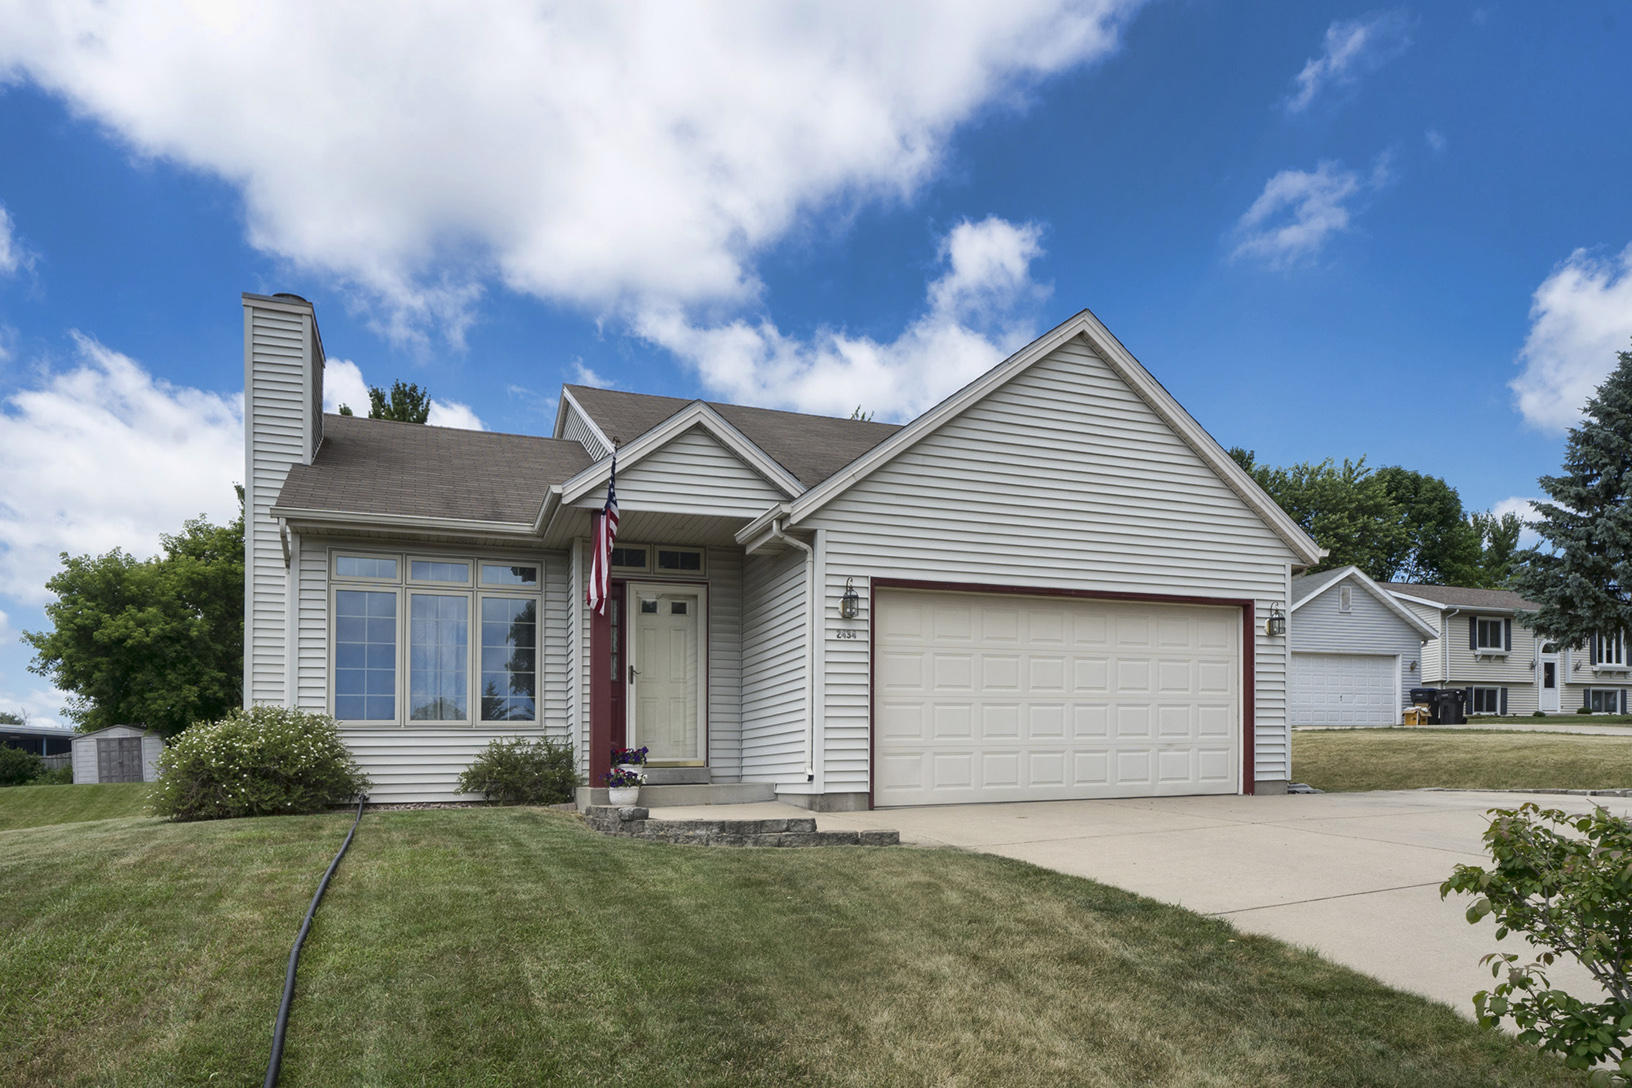 2434 Brentwood Dr, Waukesha, Wisconsin 53188, 3 Bedrooms Bedrooms, 5 Rooms Rooms,2 BathroomsBathrooms,Single-Family,For Sale,Brentwood Dr,1649035